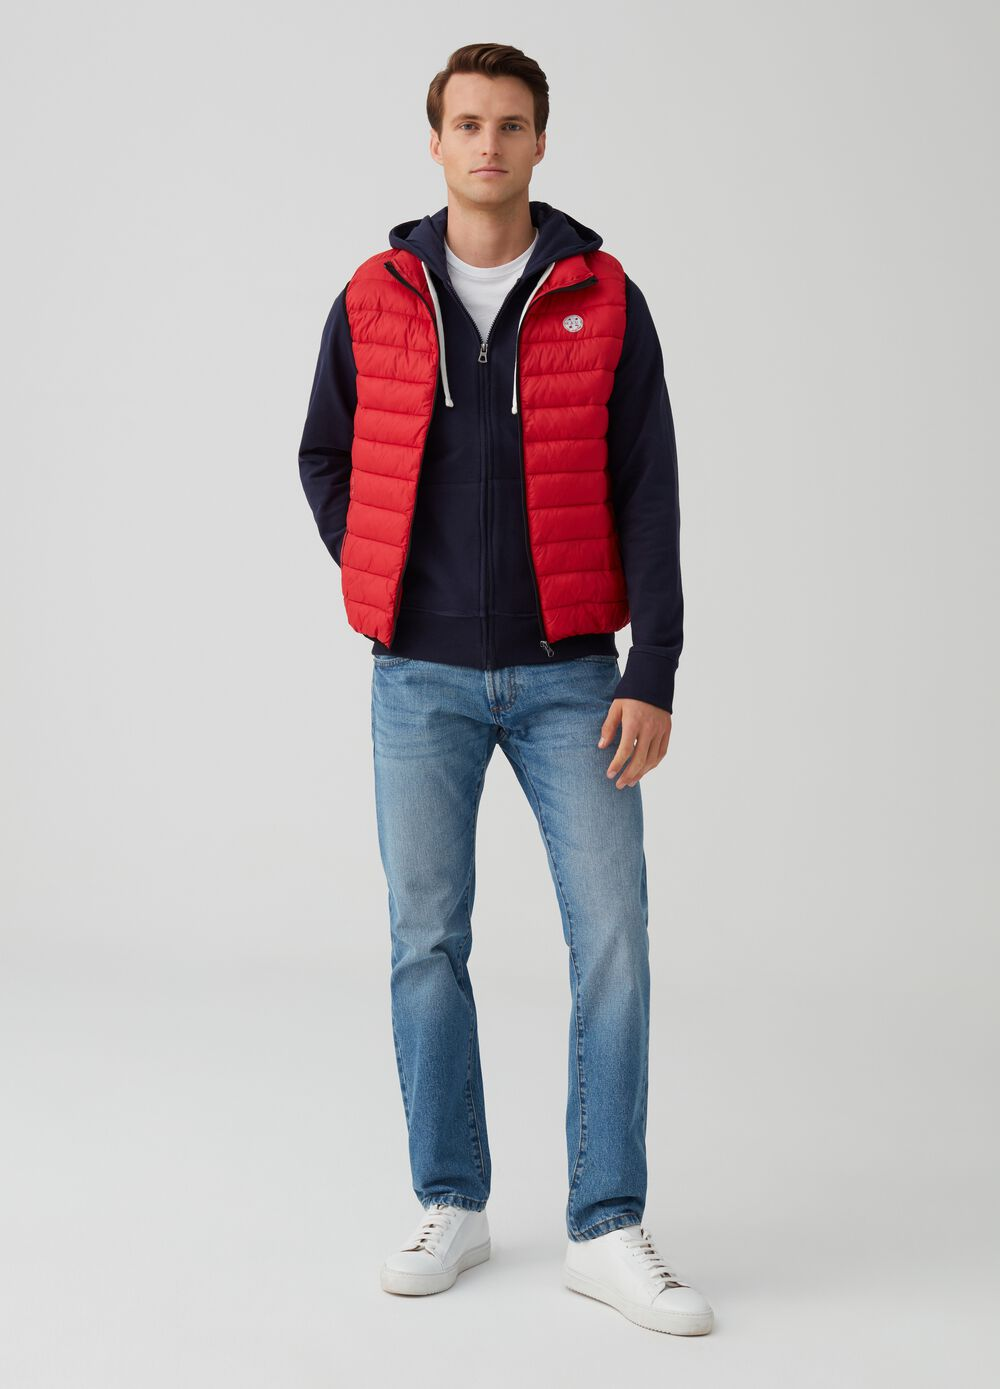 Quilted gilet by Maui and Sons